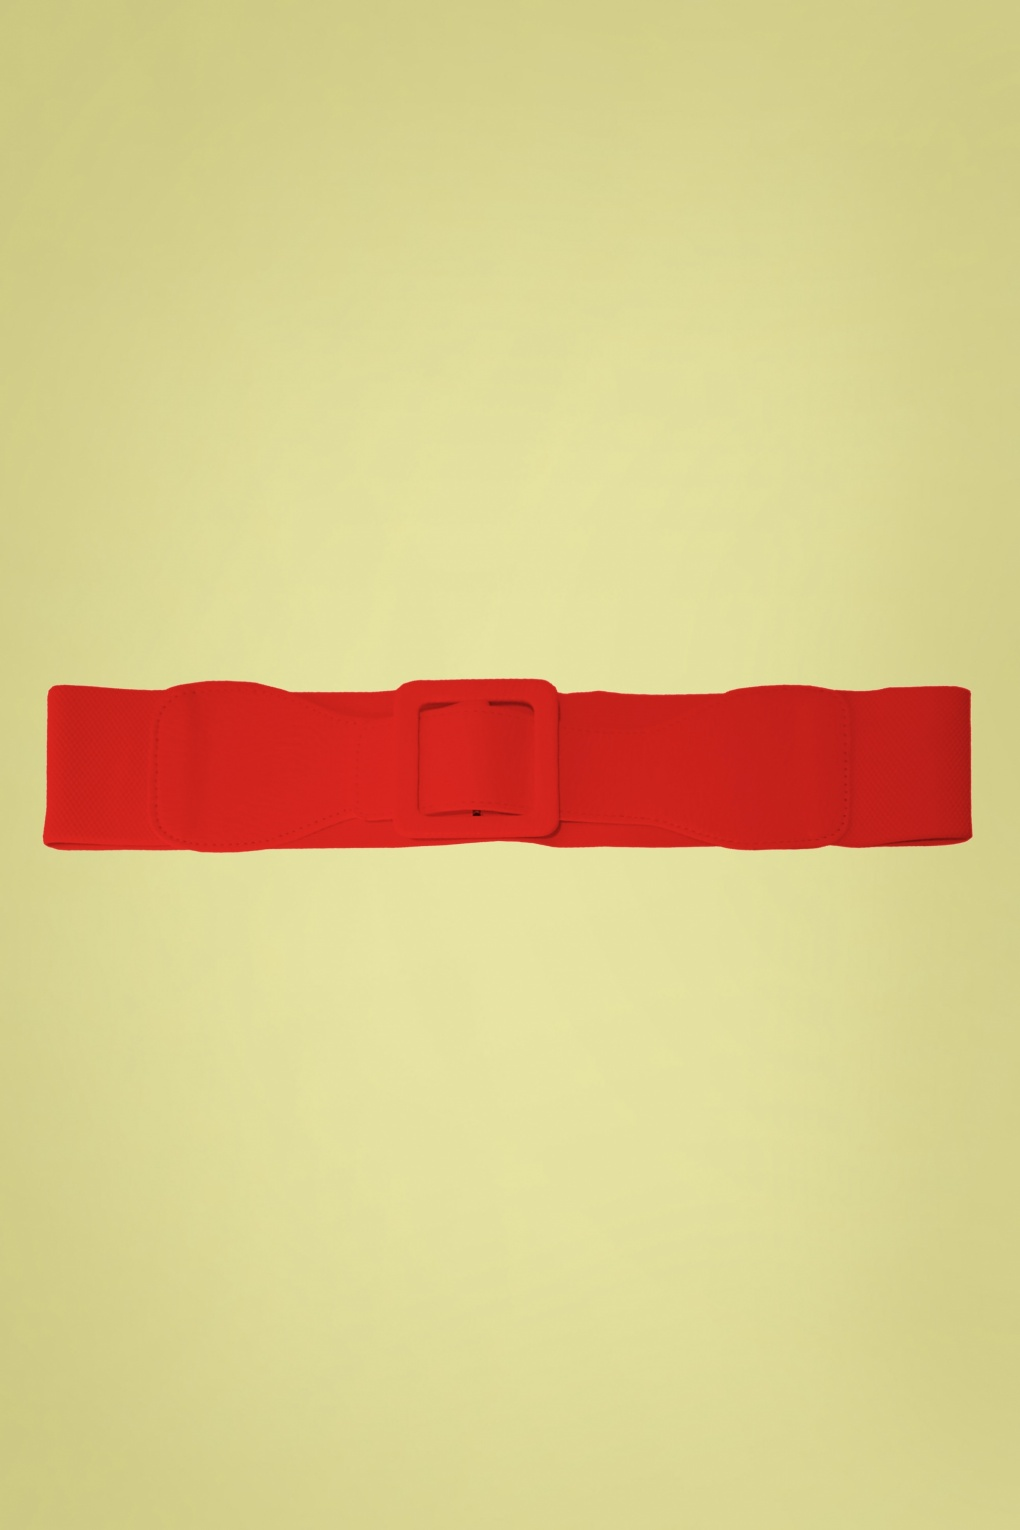 1940s Accessories: Belts, Gloves, Head Scarf 50s Ladies Day Out Square Belt in Red �7.14 AT vintagedancer.com